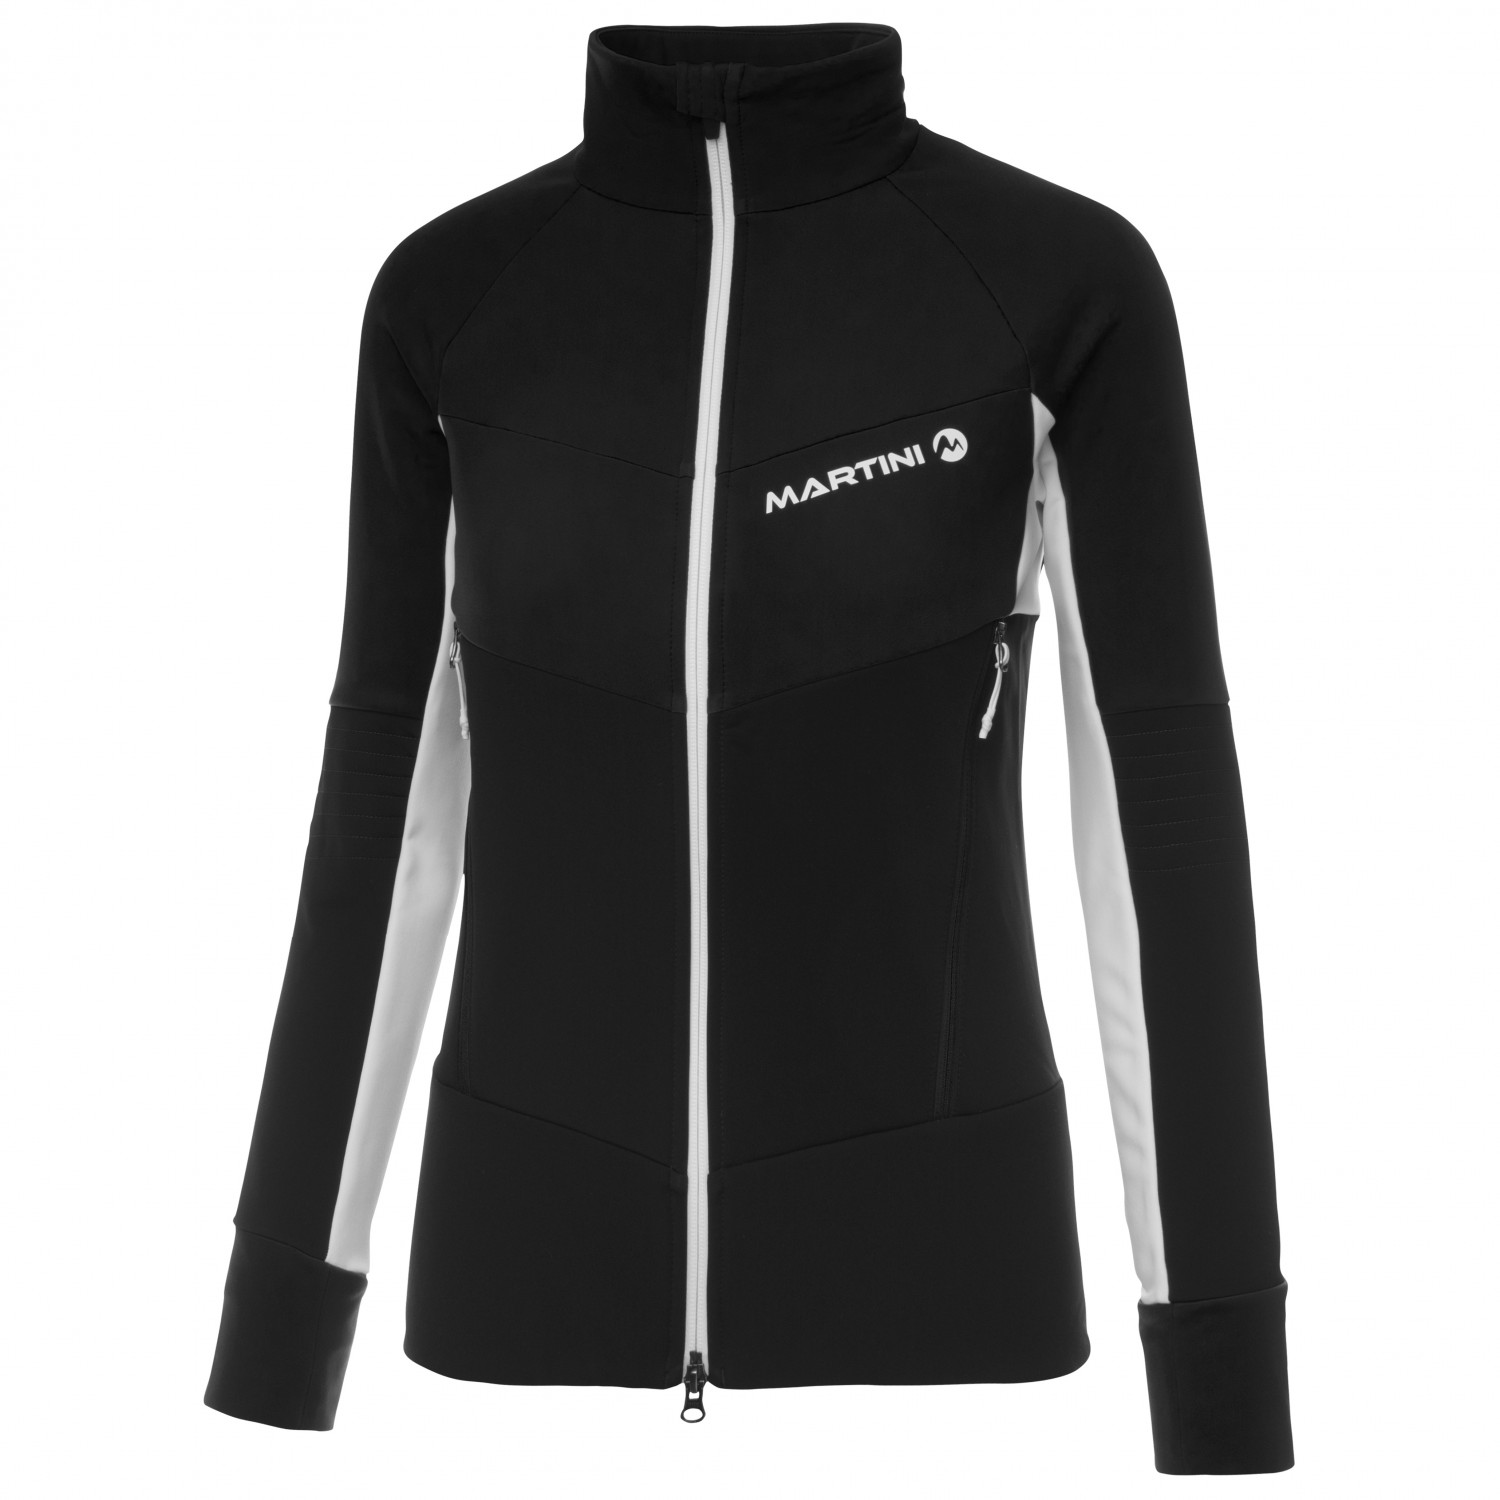 Martini Free Power Fleecejacke Damen online kaufen | Berg